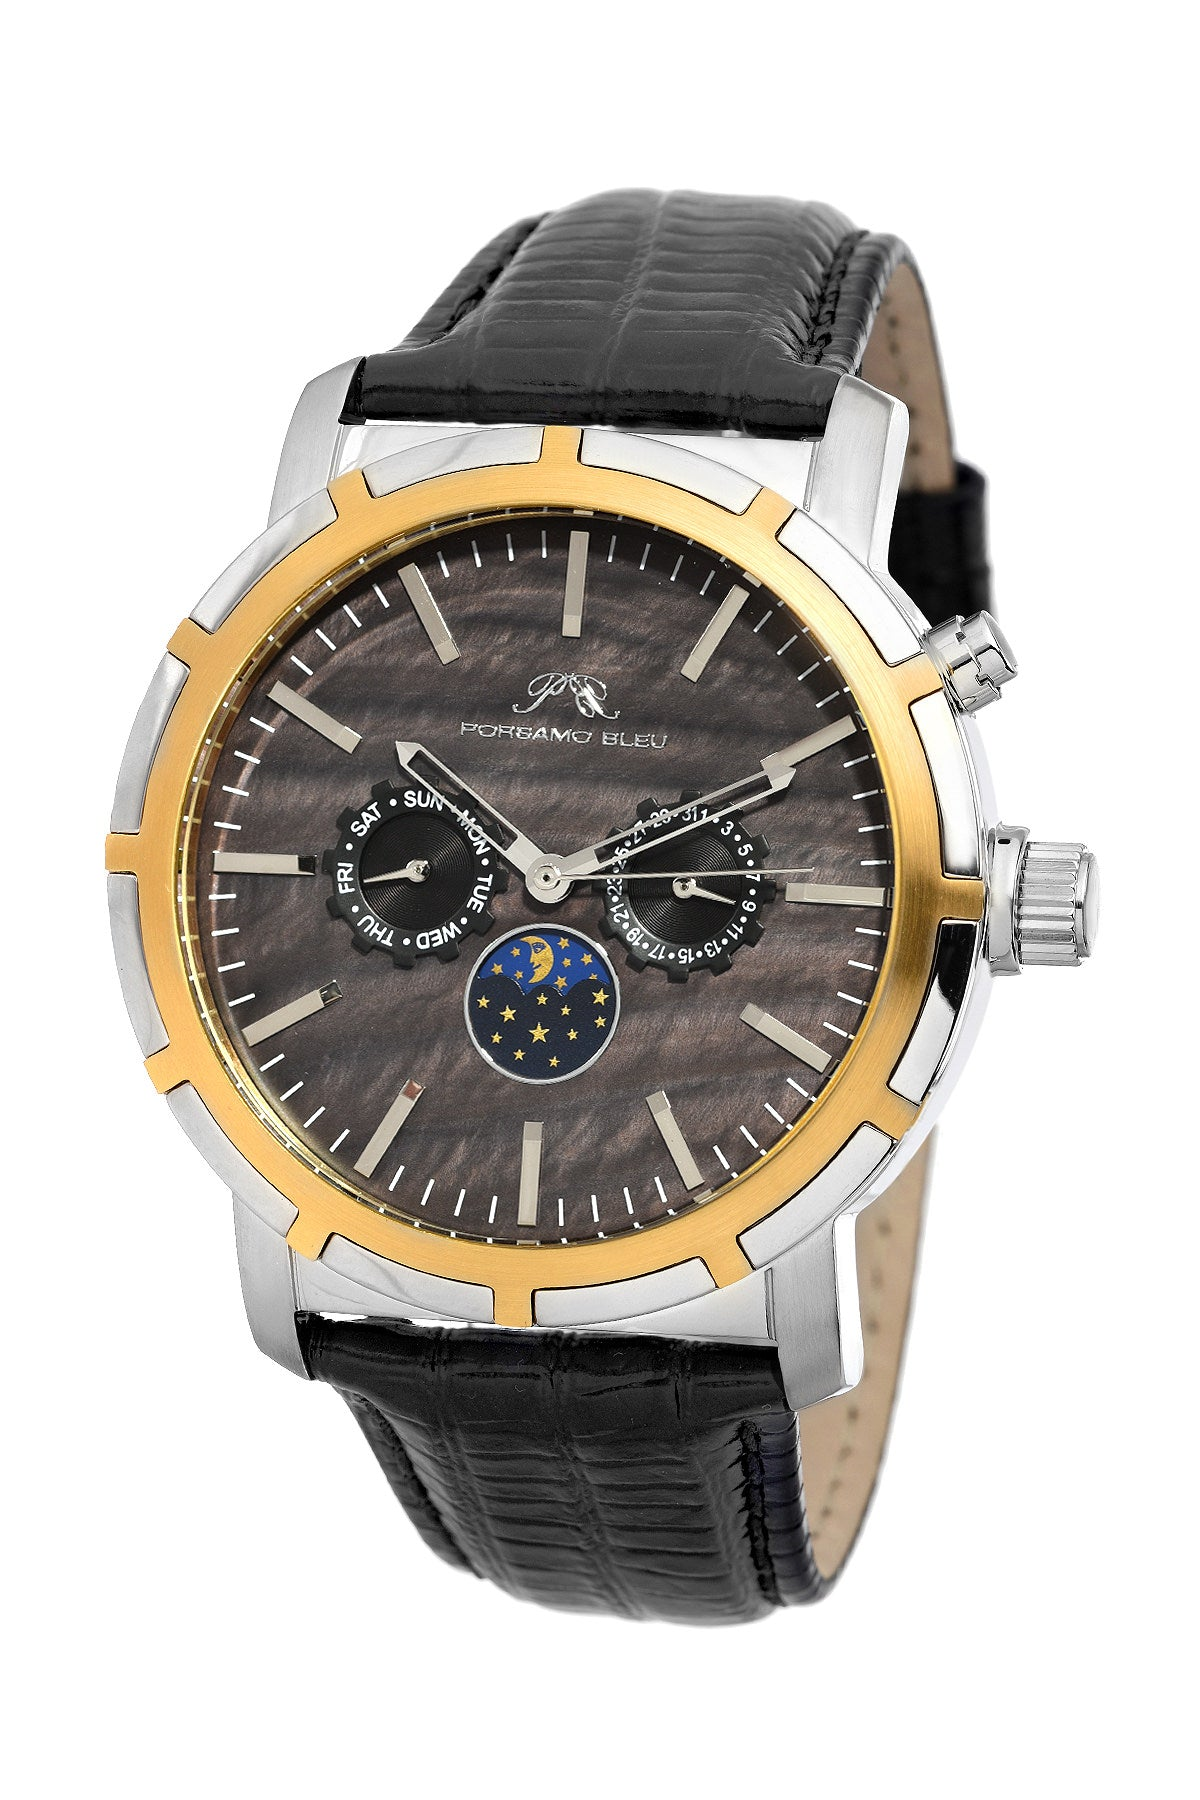 Porsamo Bleu NYC Moon luxury men's watch, genuine leather band, gold, silver, black 057DNYL